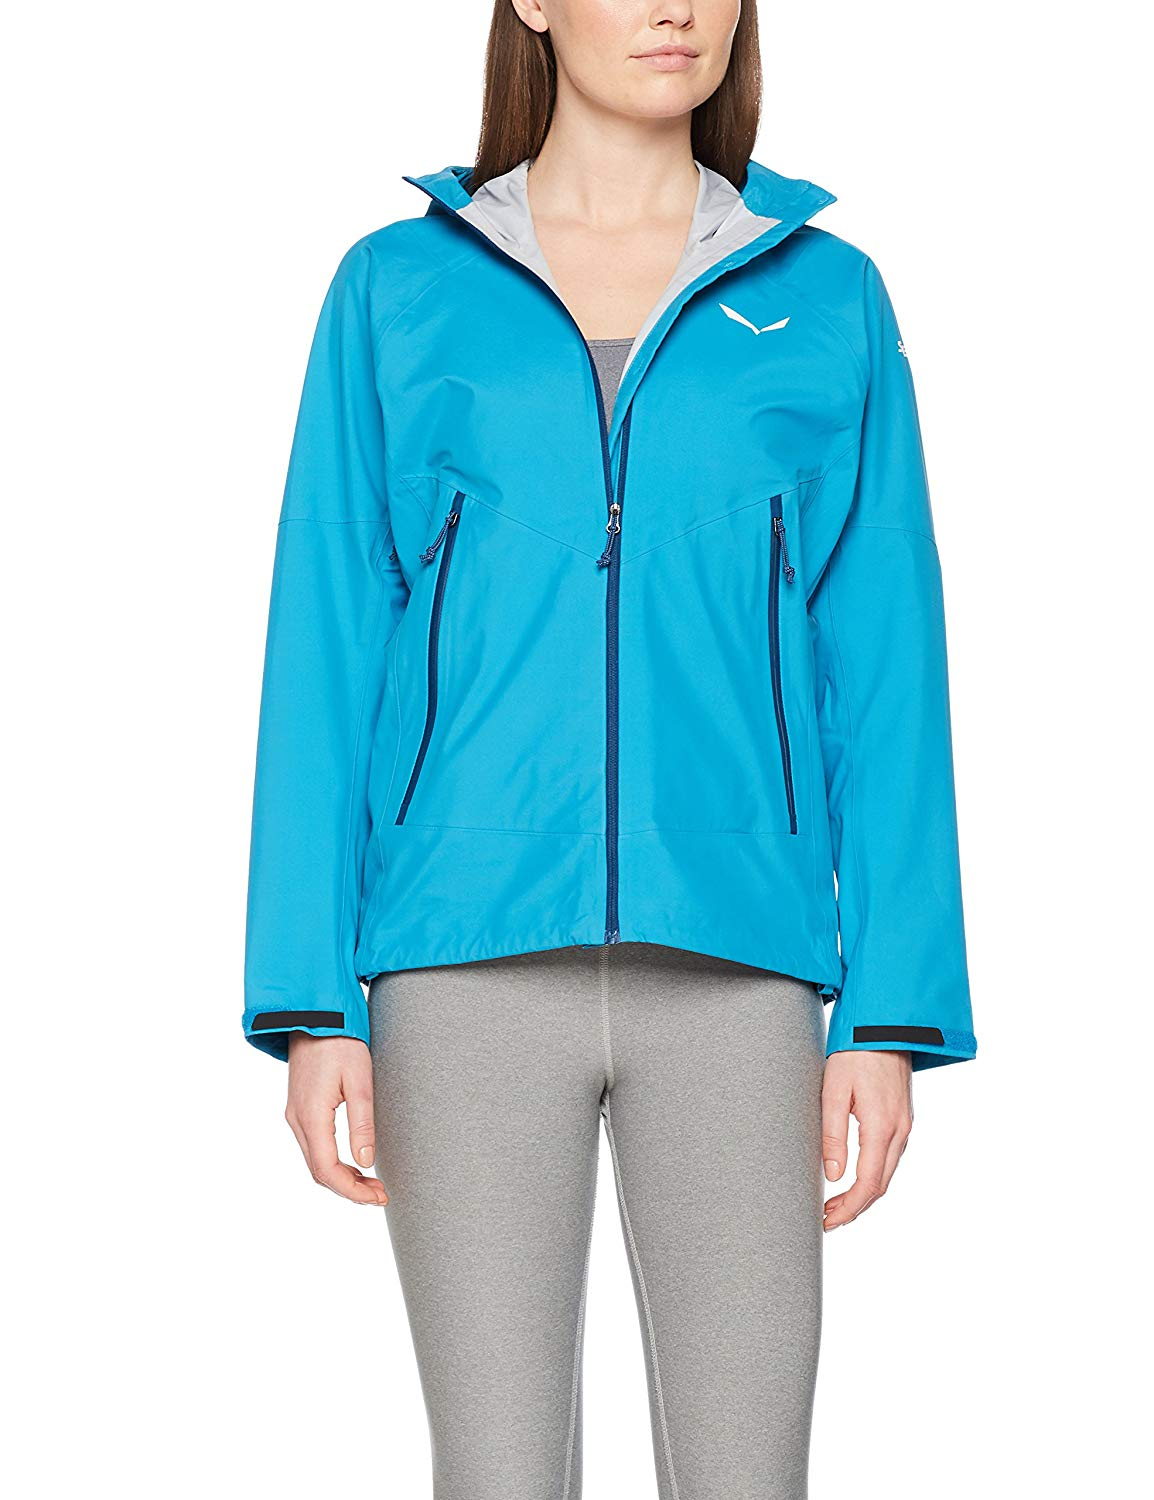 Salewa Damen Sesvenna Softshell Jacke - blue caneel bay - 40